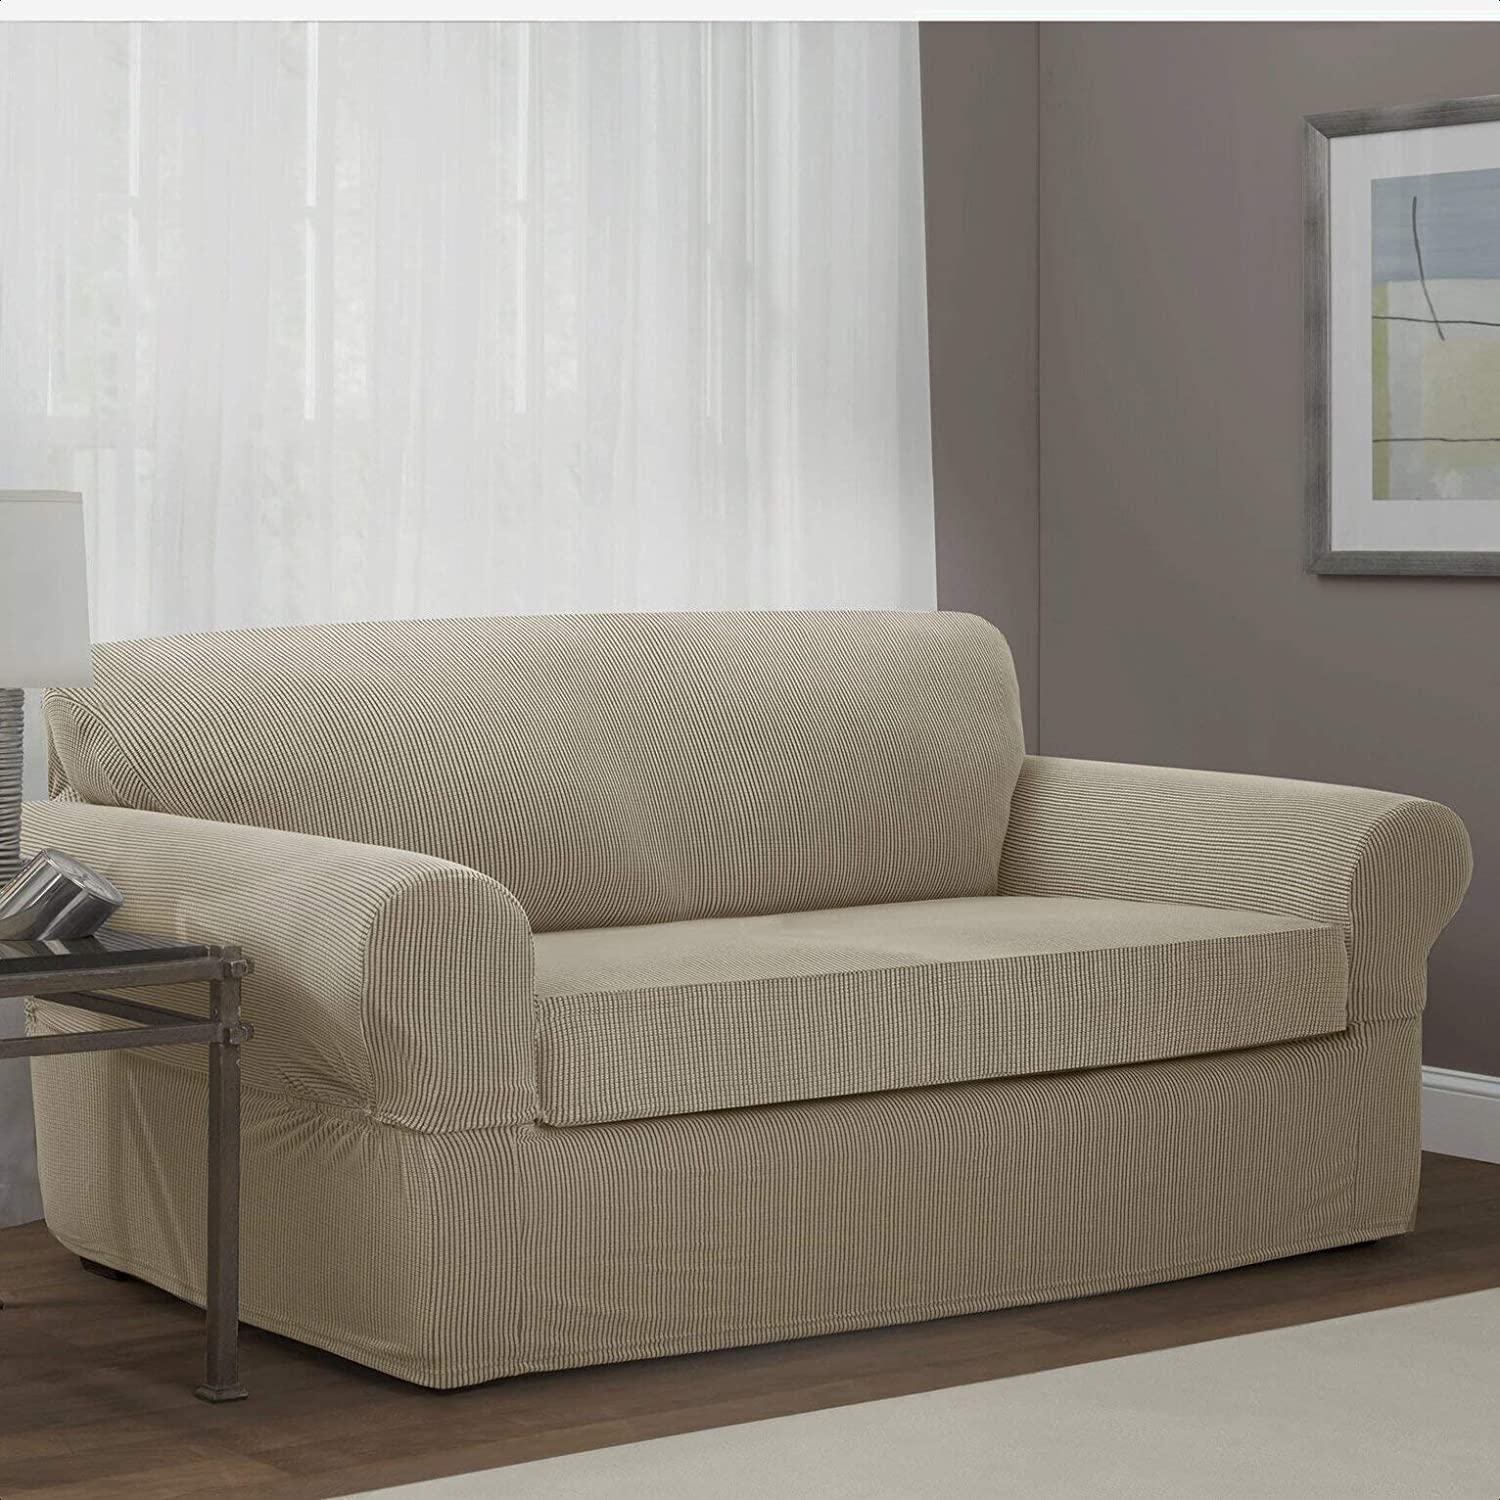 Stretch Box Ranking TOP15 Cushion Loveseat Slipcover Material: Upholstery Pol Excellent